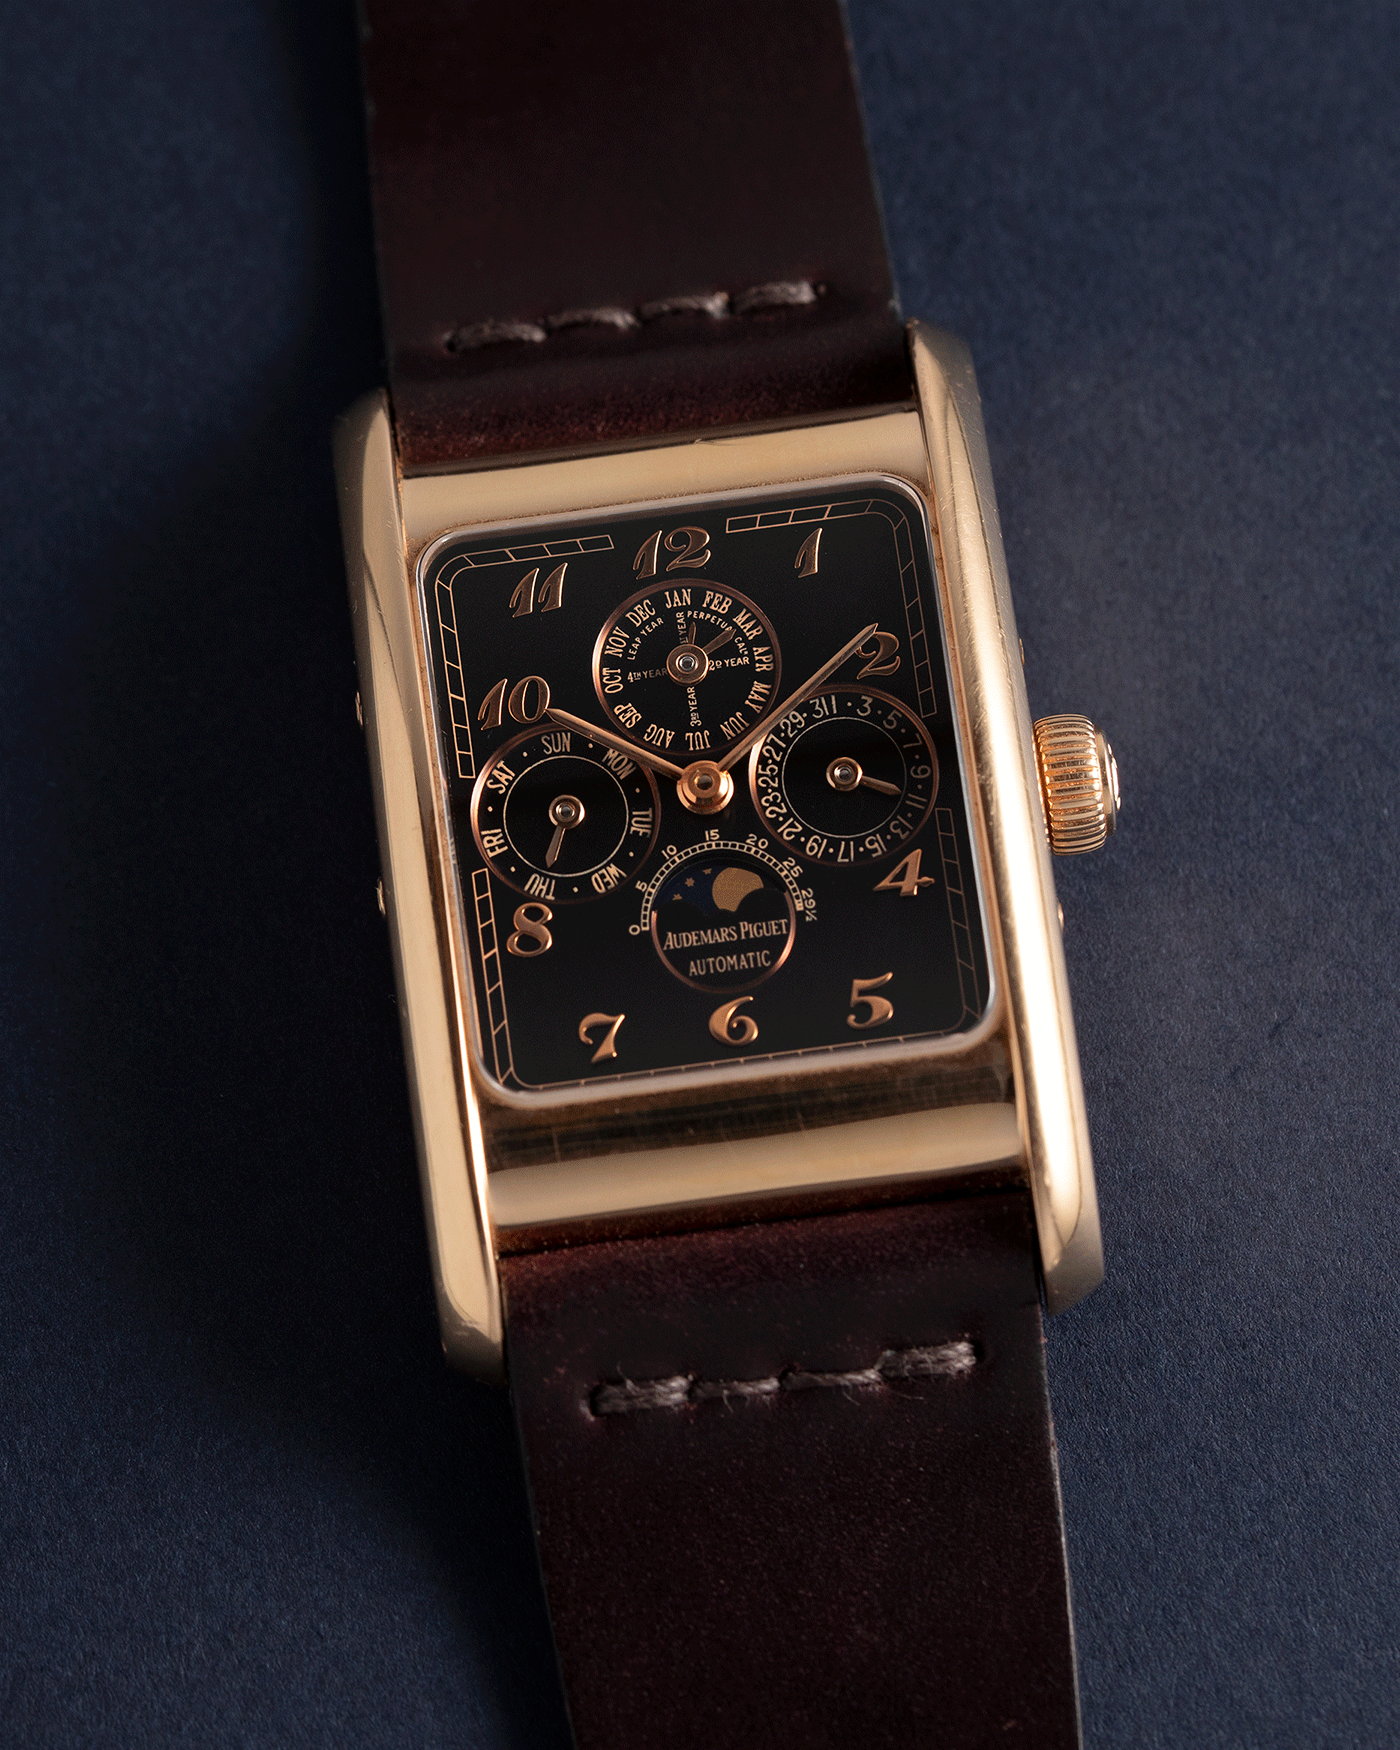 Brand: Audemars Piguet Year: 1990's Model: Edward Piguet Reference Number: 25853OR Material: 18k Rose Gold Movement: Cal 2141 Case Diameter: 27mmX45mm Bracelet: Dark Brown Horween Shell Cordovan Strap and 18k Rose Gold Audemars Piguet Tang Buckle